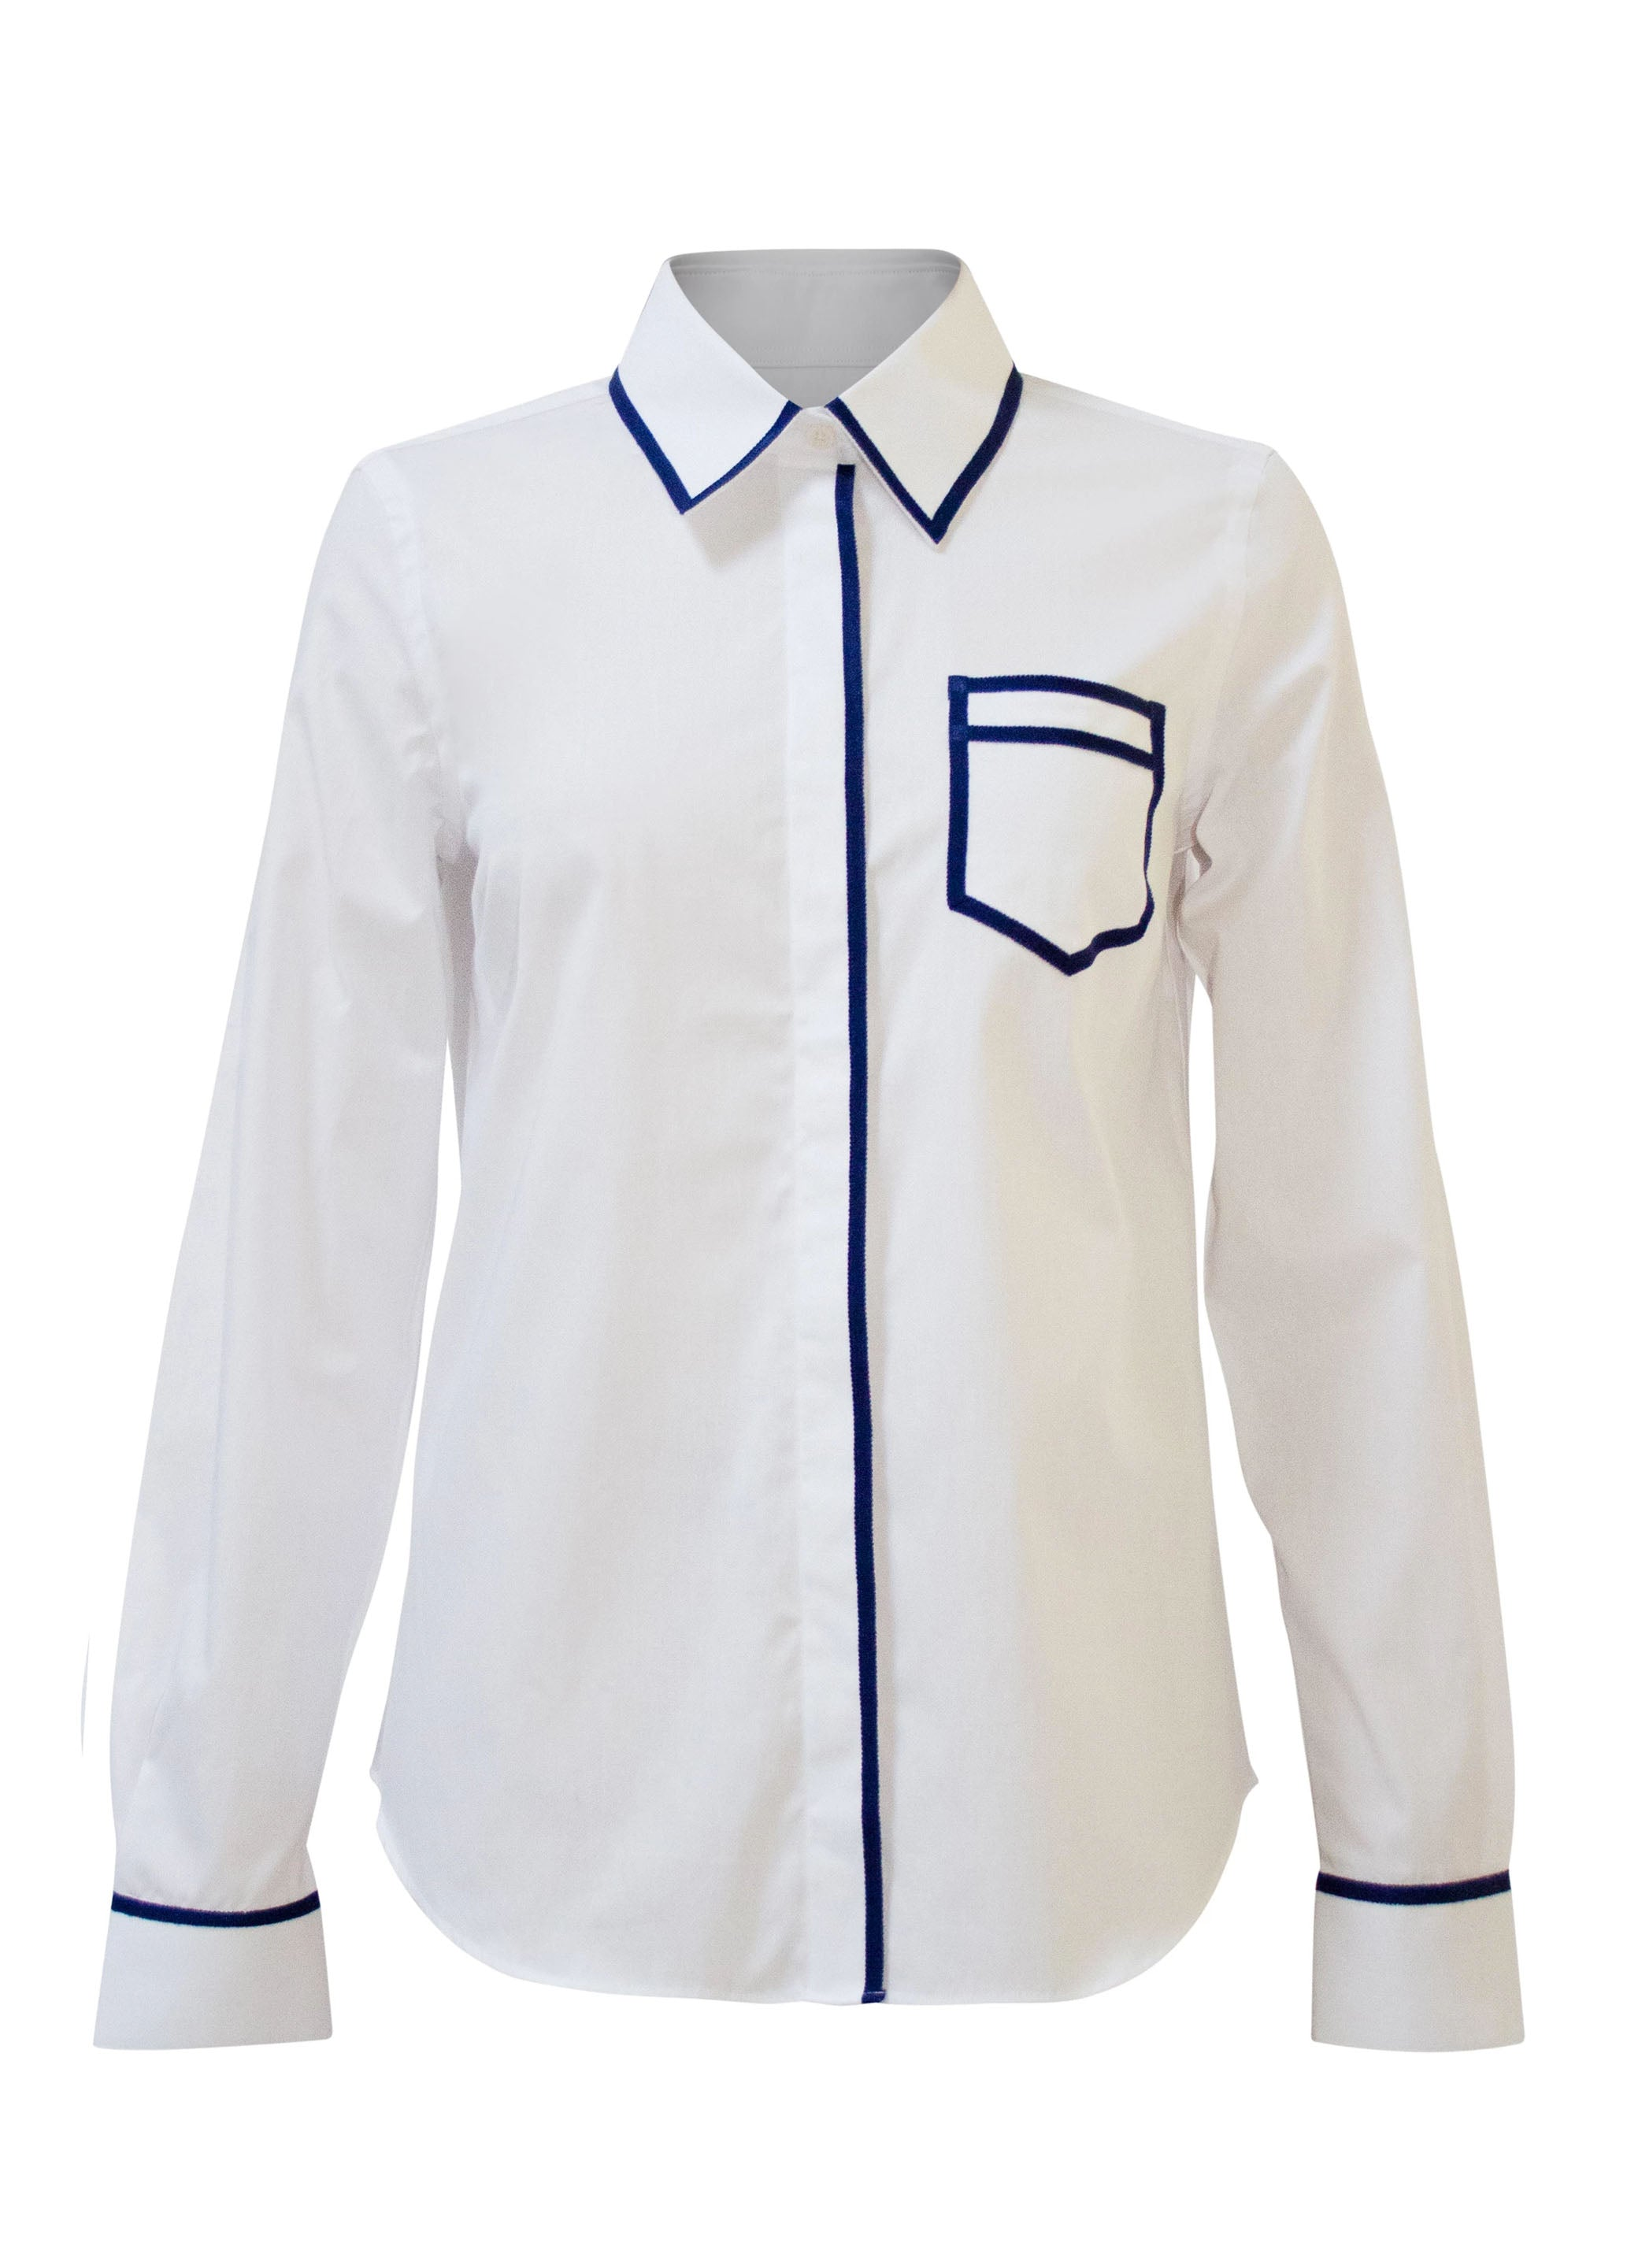 Twill Trompe L'Oeil Shirt - White / Blue